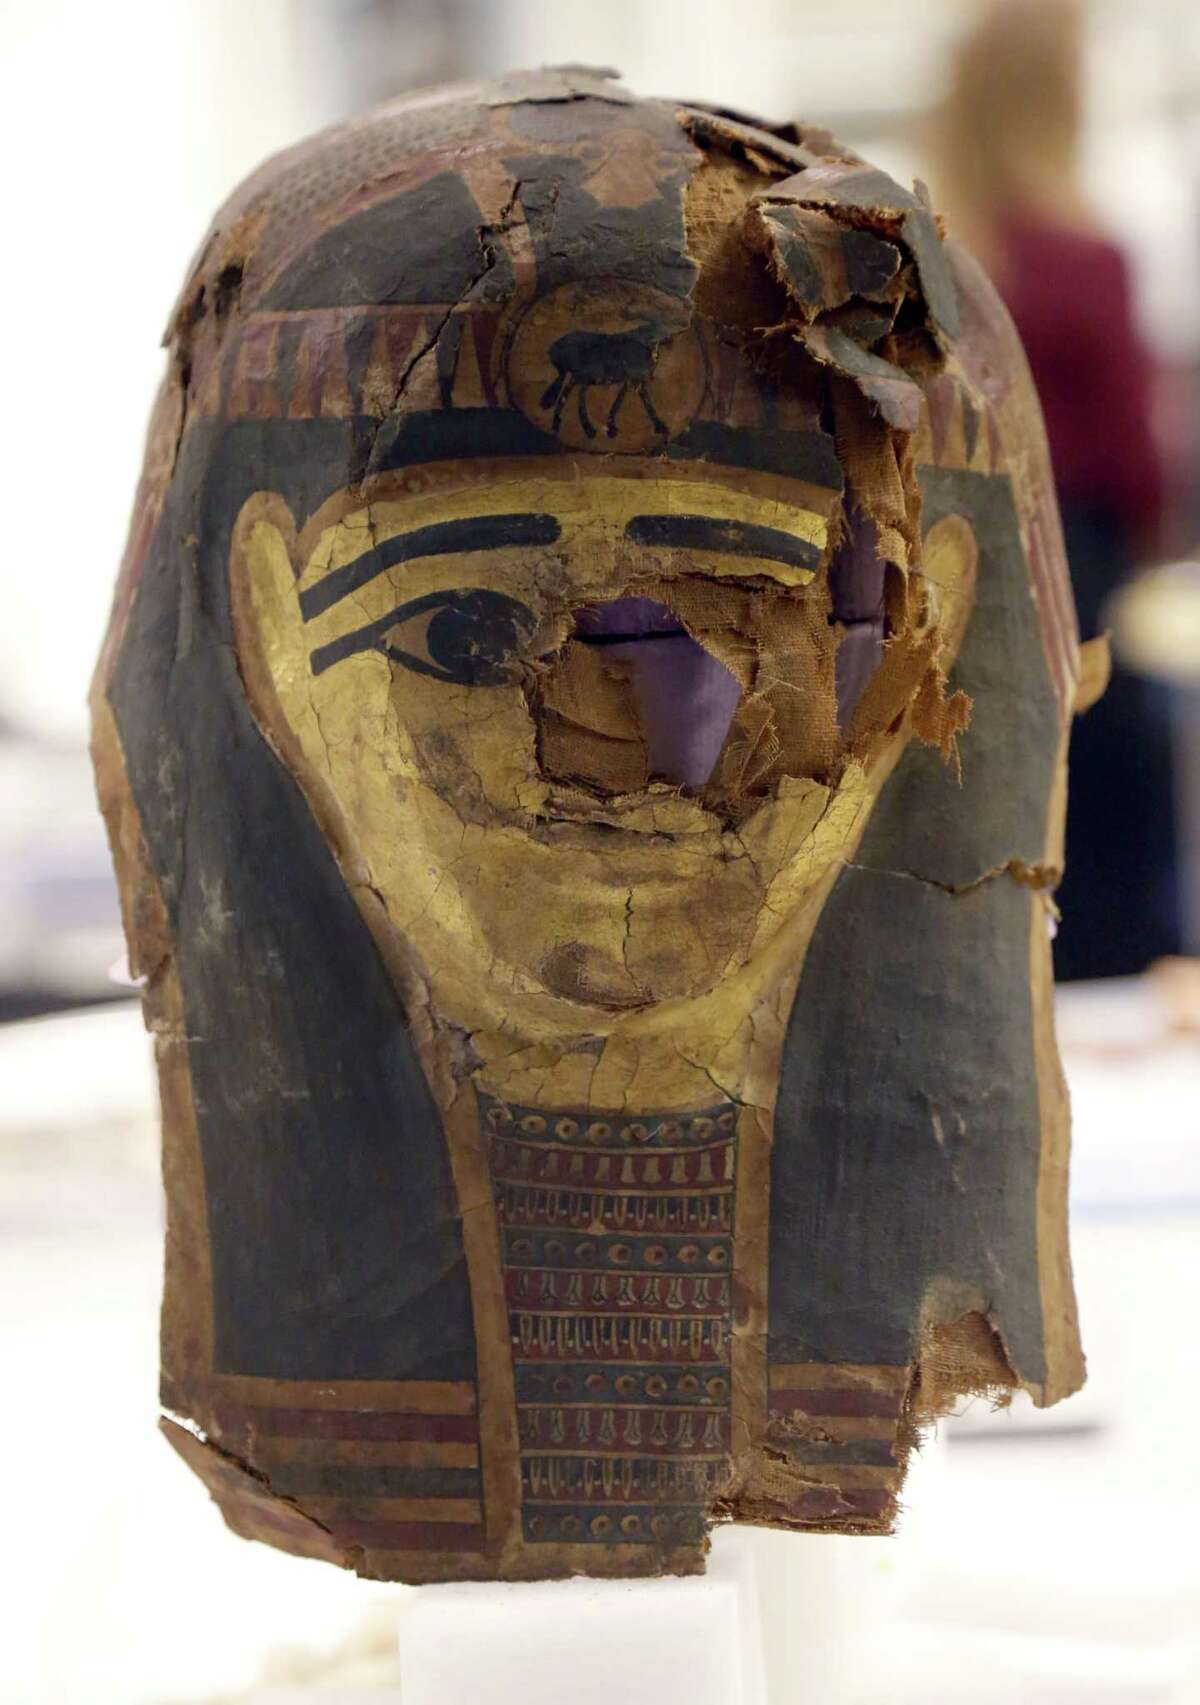 The burial mask of Minirdis, a 14-year-old Egyptian boy who was the son of a priest, is positioned for conservation work Wednesday, Dec. 10, 2014, in Chicago. JP Brown, Regenstein Conservator at the Field museum and his team have opened the coffin Minirdis, the 2,500-year-old mummy to perform conservation work before it becomes part of a traveling exhibition.